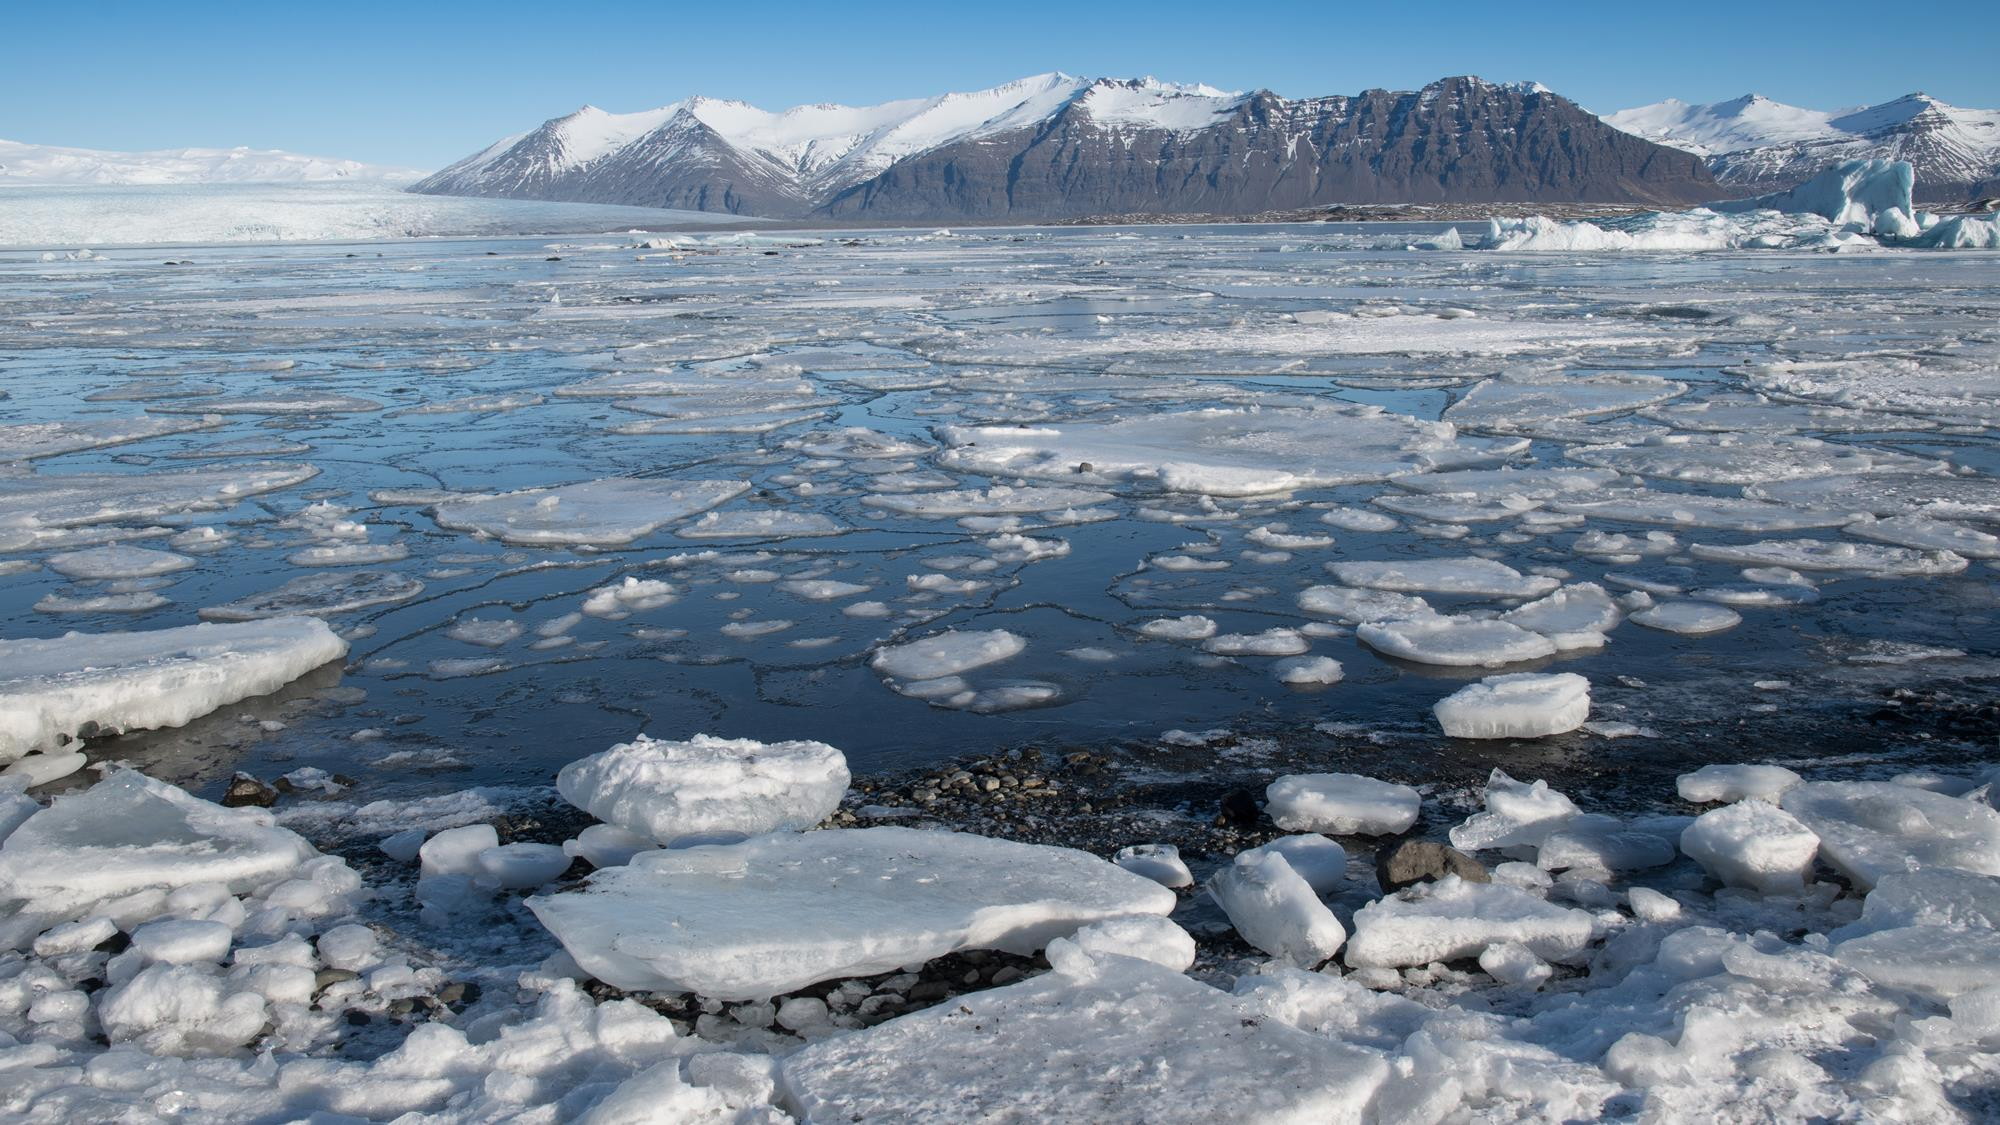 , The speed of Abrupt Climate Change accelerates upheaval in the Arctic. And, summer 2020 is coming., The Politicus